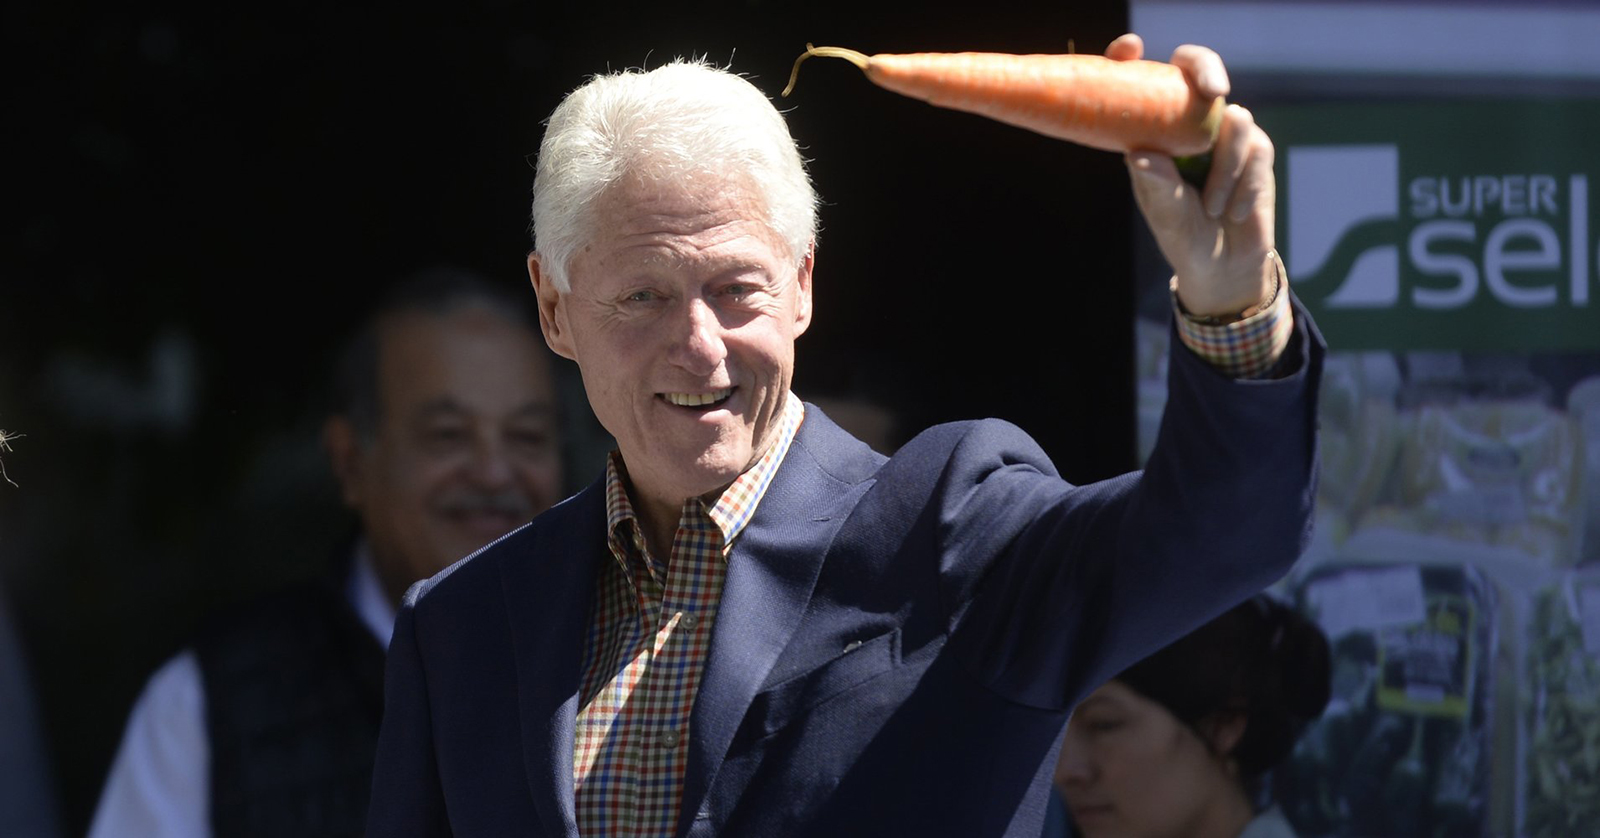 Politician   25 Famous Vegan Celebrities You Probably Don't Know About